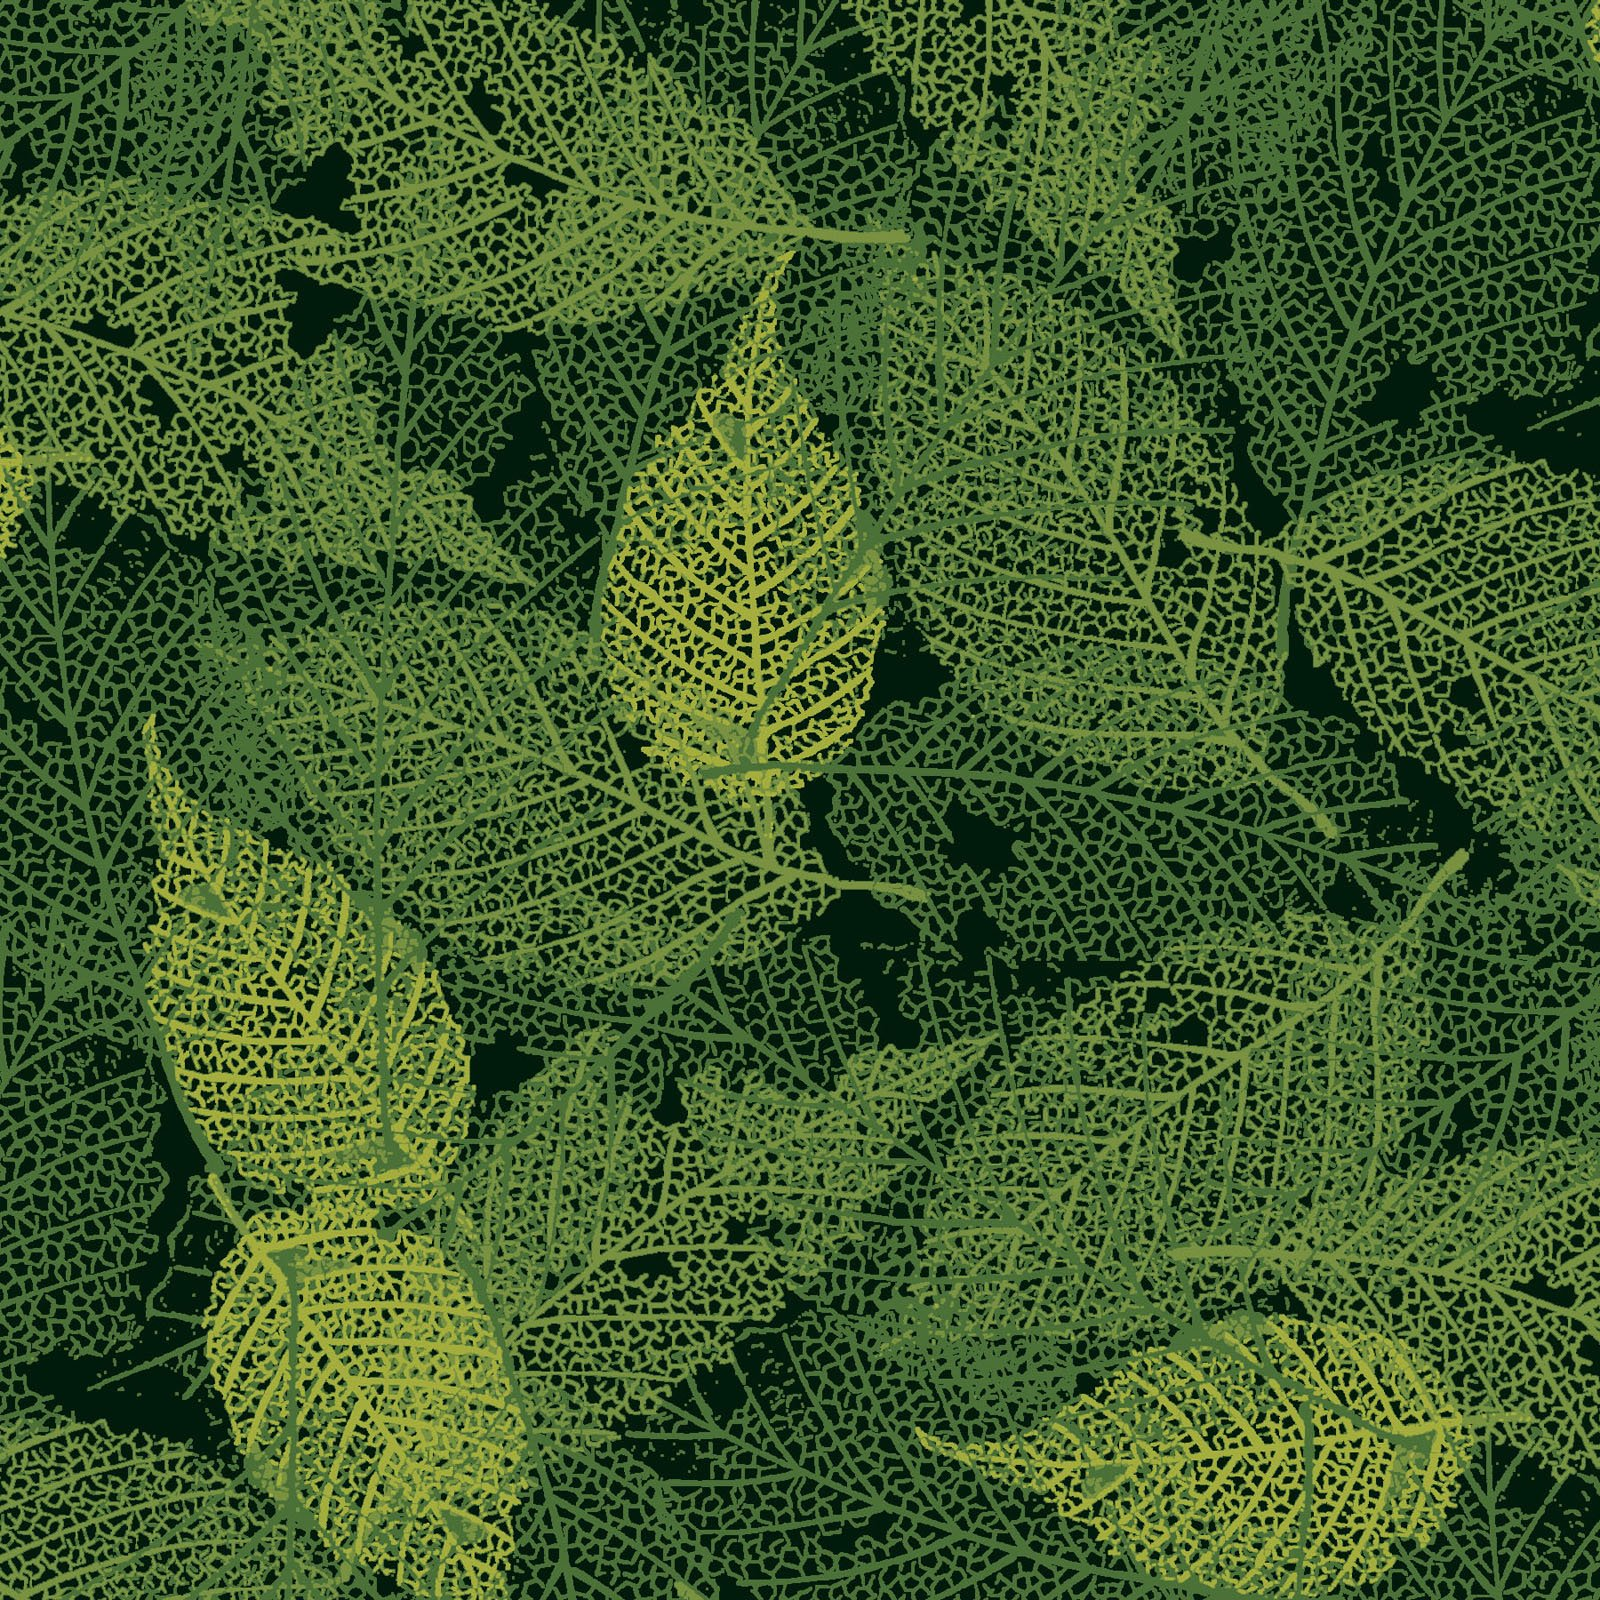 FOLI-4478 GG - FOLIAGE BY P&B BOUTIQUE TEXTURE LEAVES DK GREEN - ARRIVING IN MAY 2021